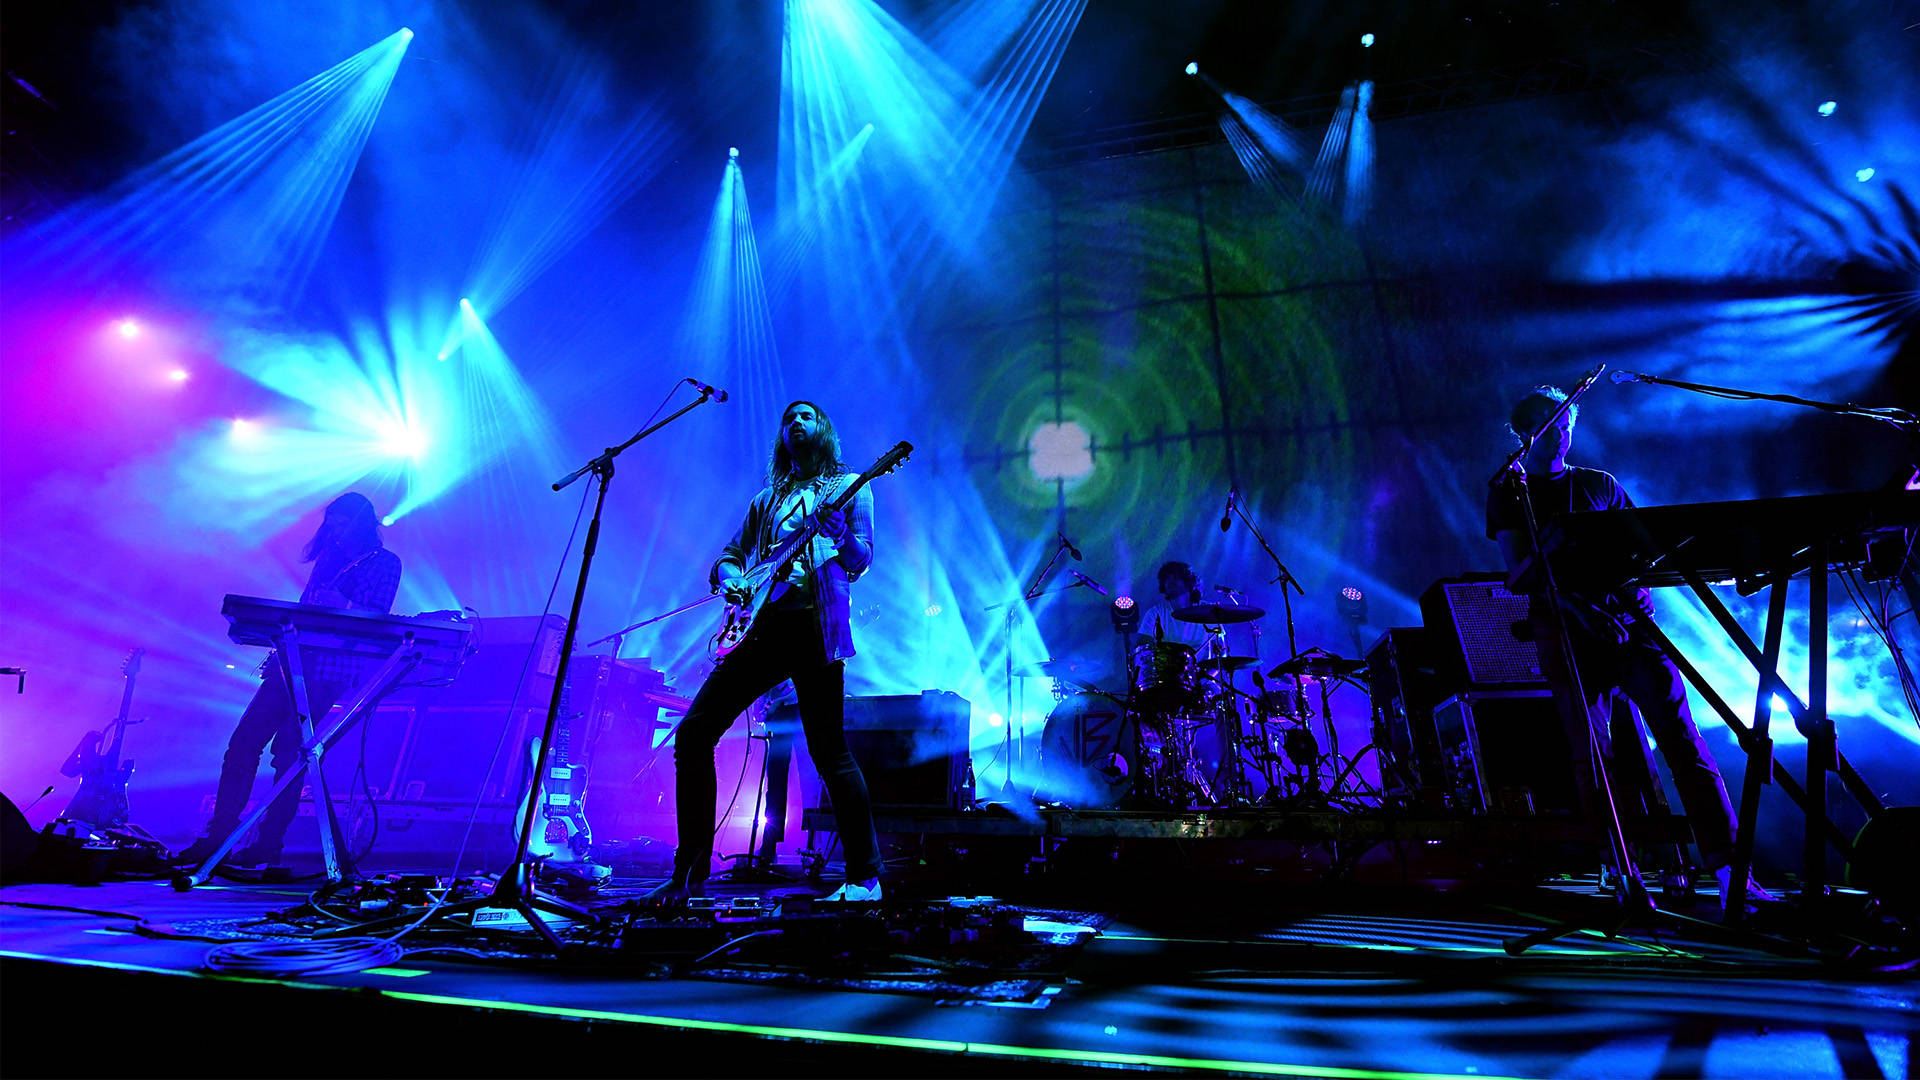 Tame Impala performs onstage during FYF Fest 2016 at Los Angeles Sports Arena on August 27, 2016. Kevin Winter/Getty Images for FYF